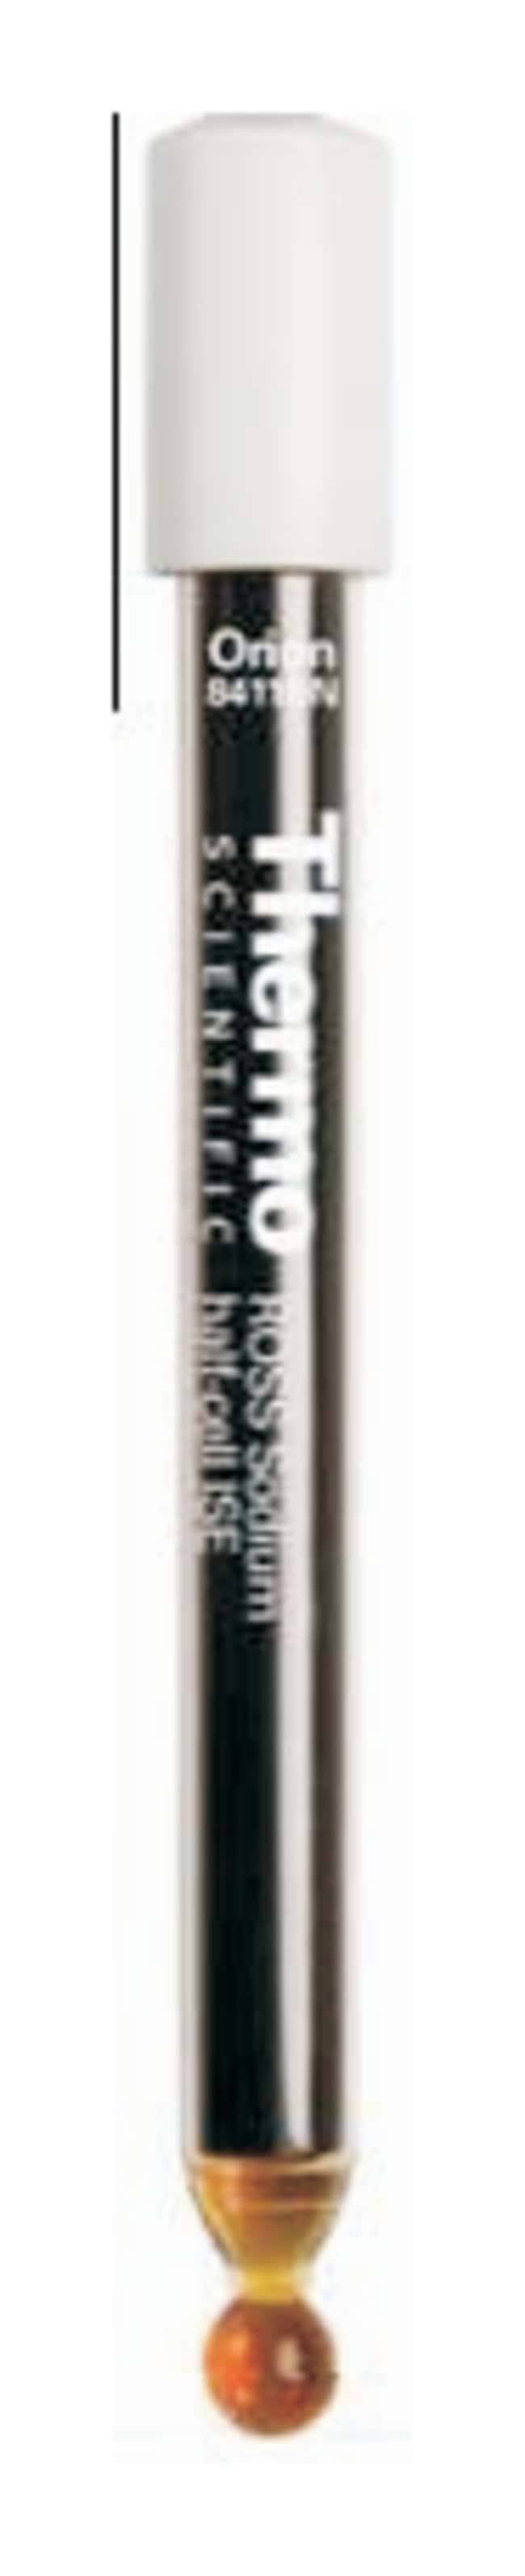 Thermo Scientific Orion Sodium Electrodes:Thermometers, pH Meters, Timers